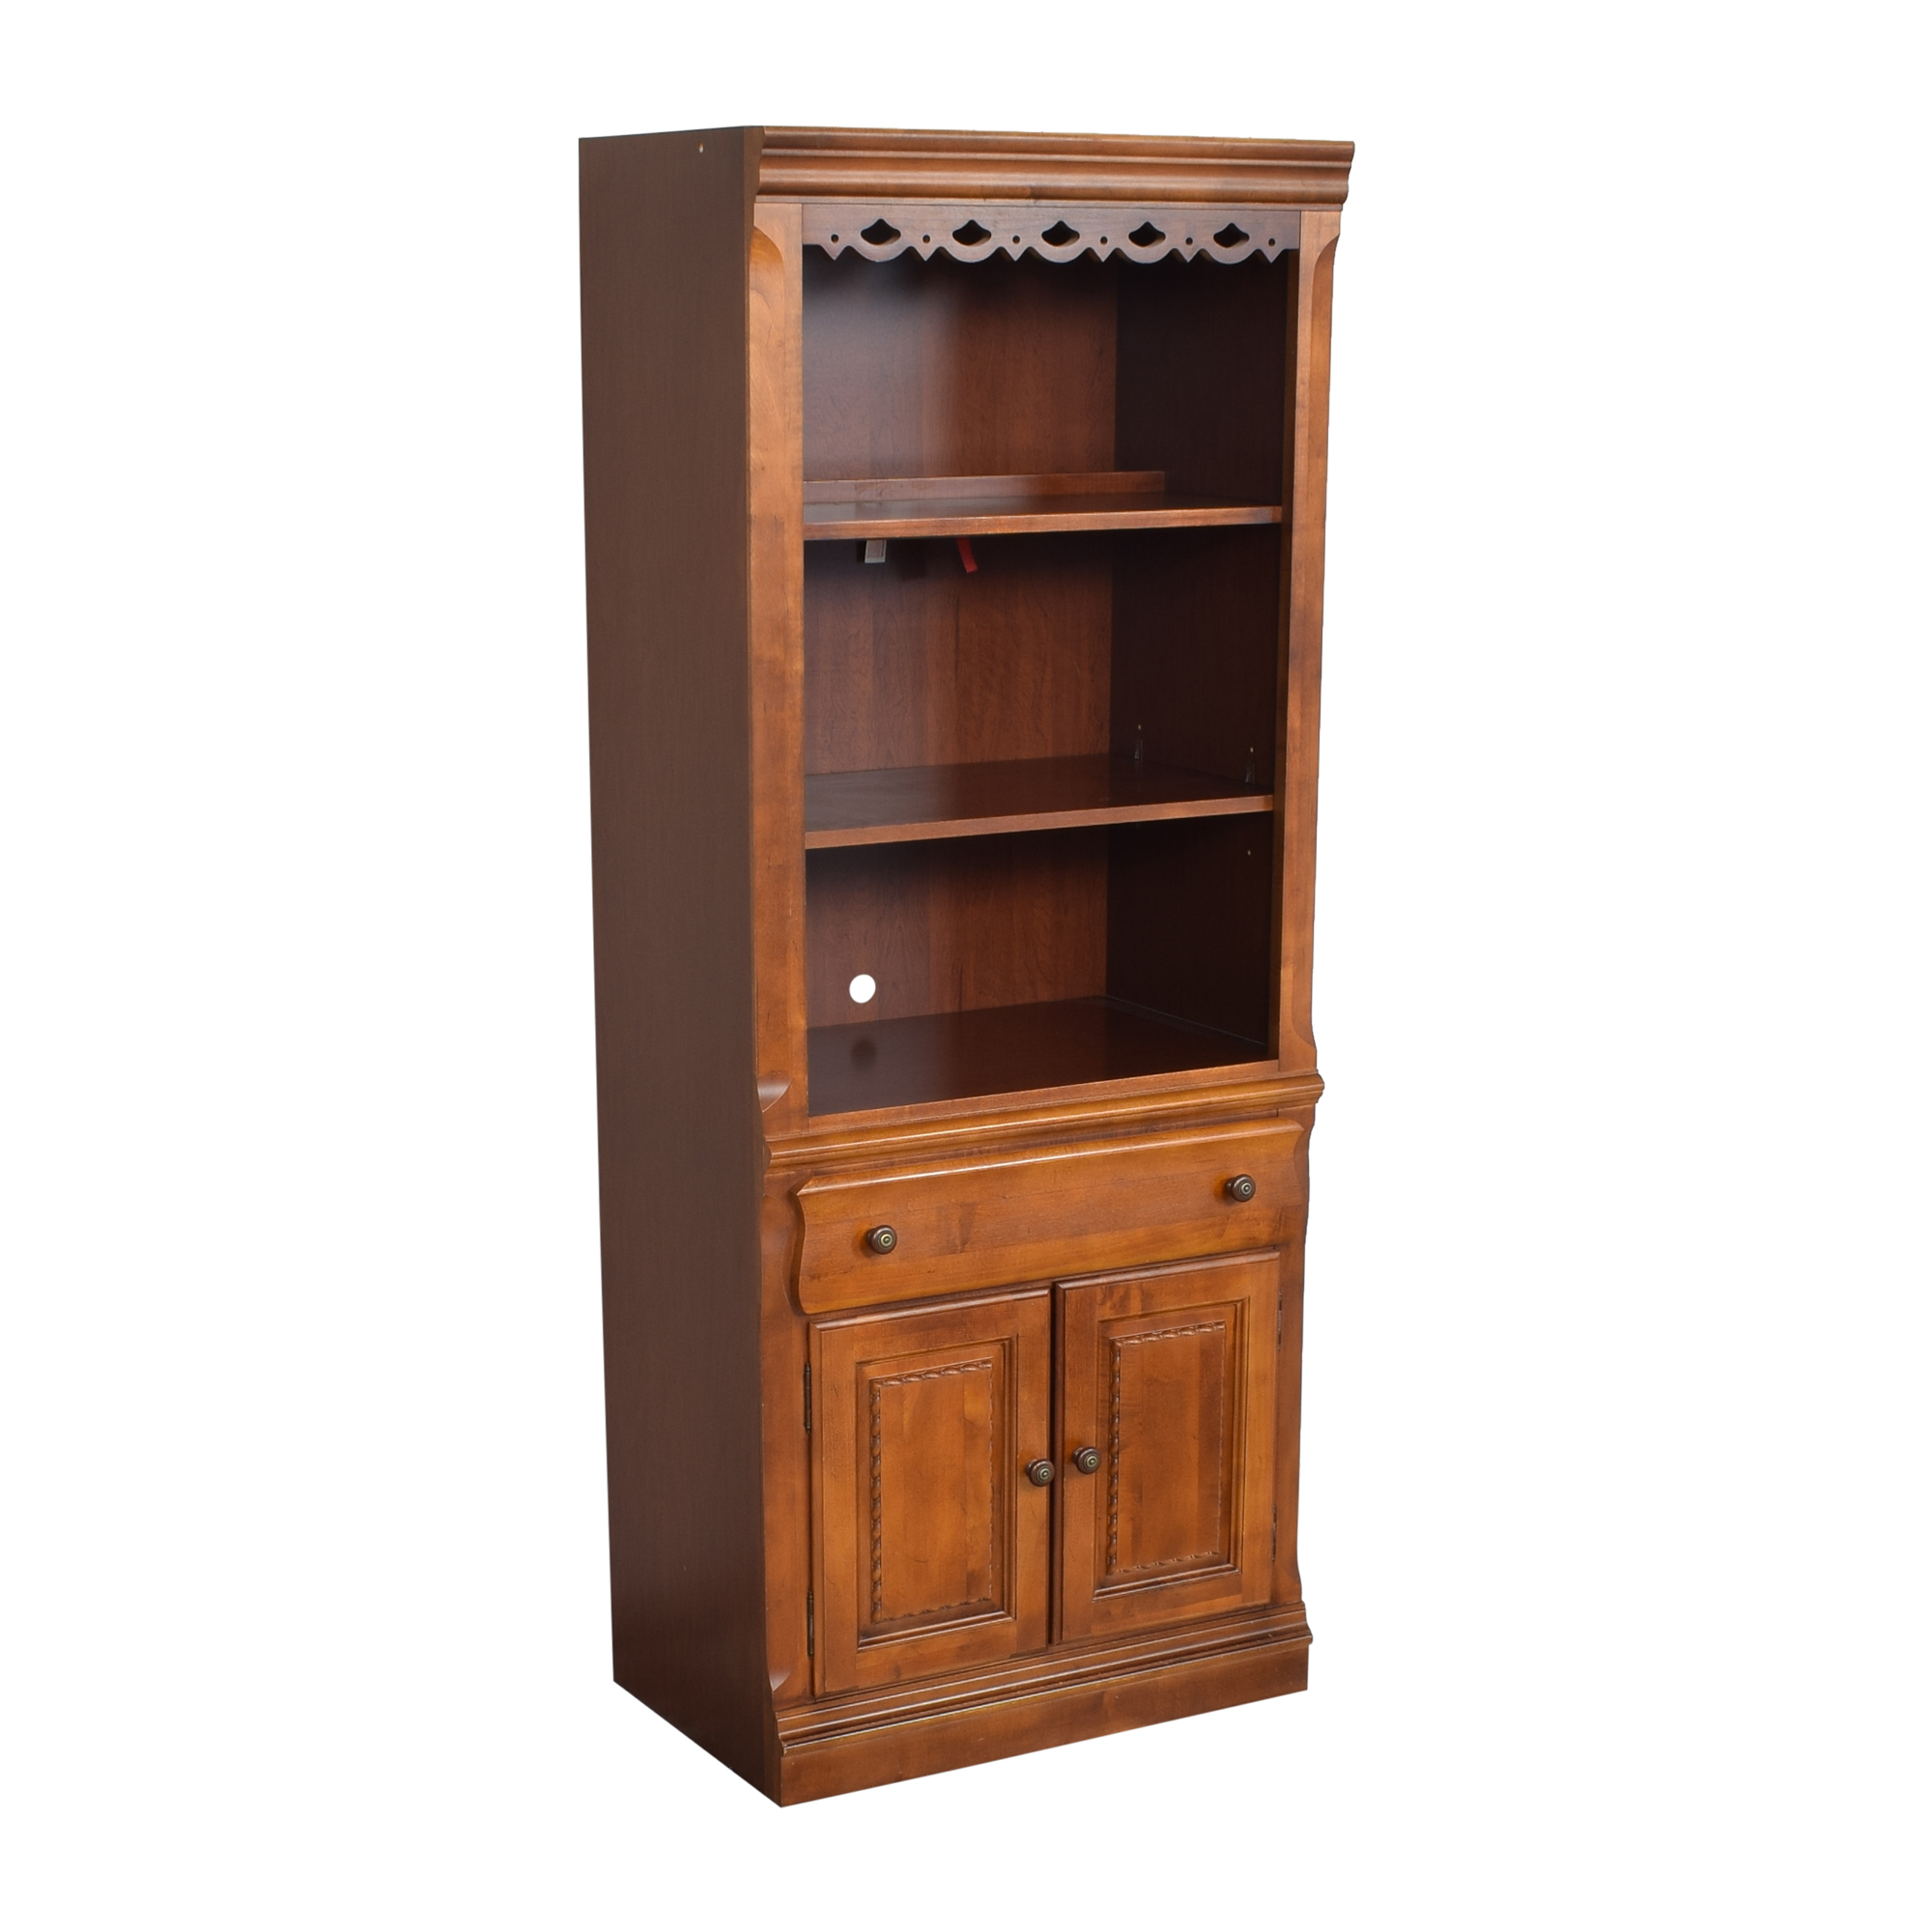 Broyhill Furniture Broyhill Furniture Lighted Bookcase used